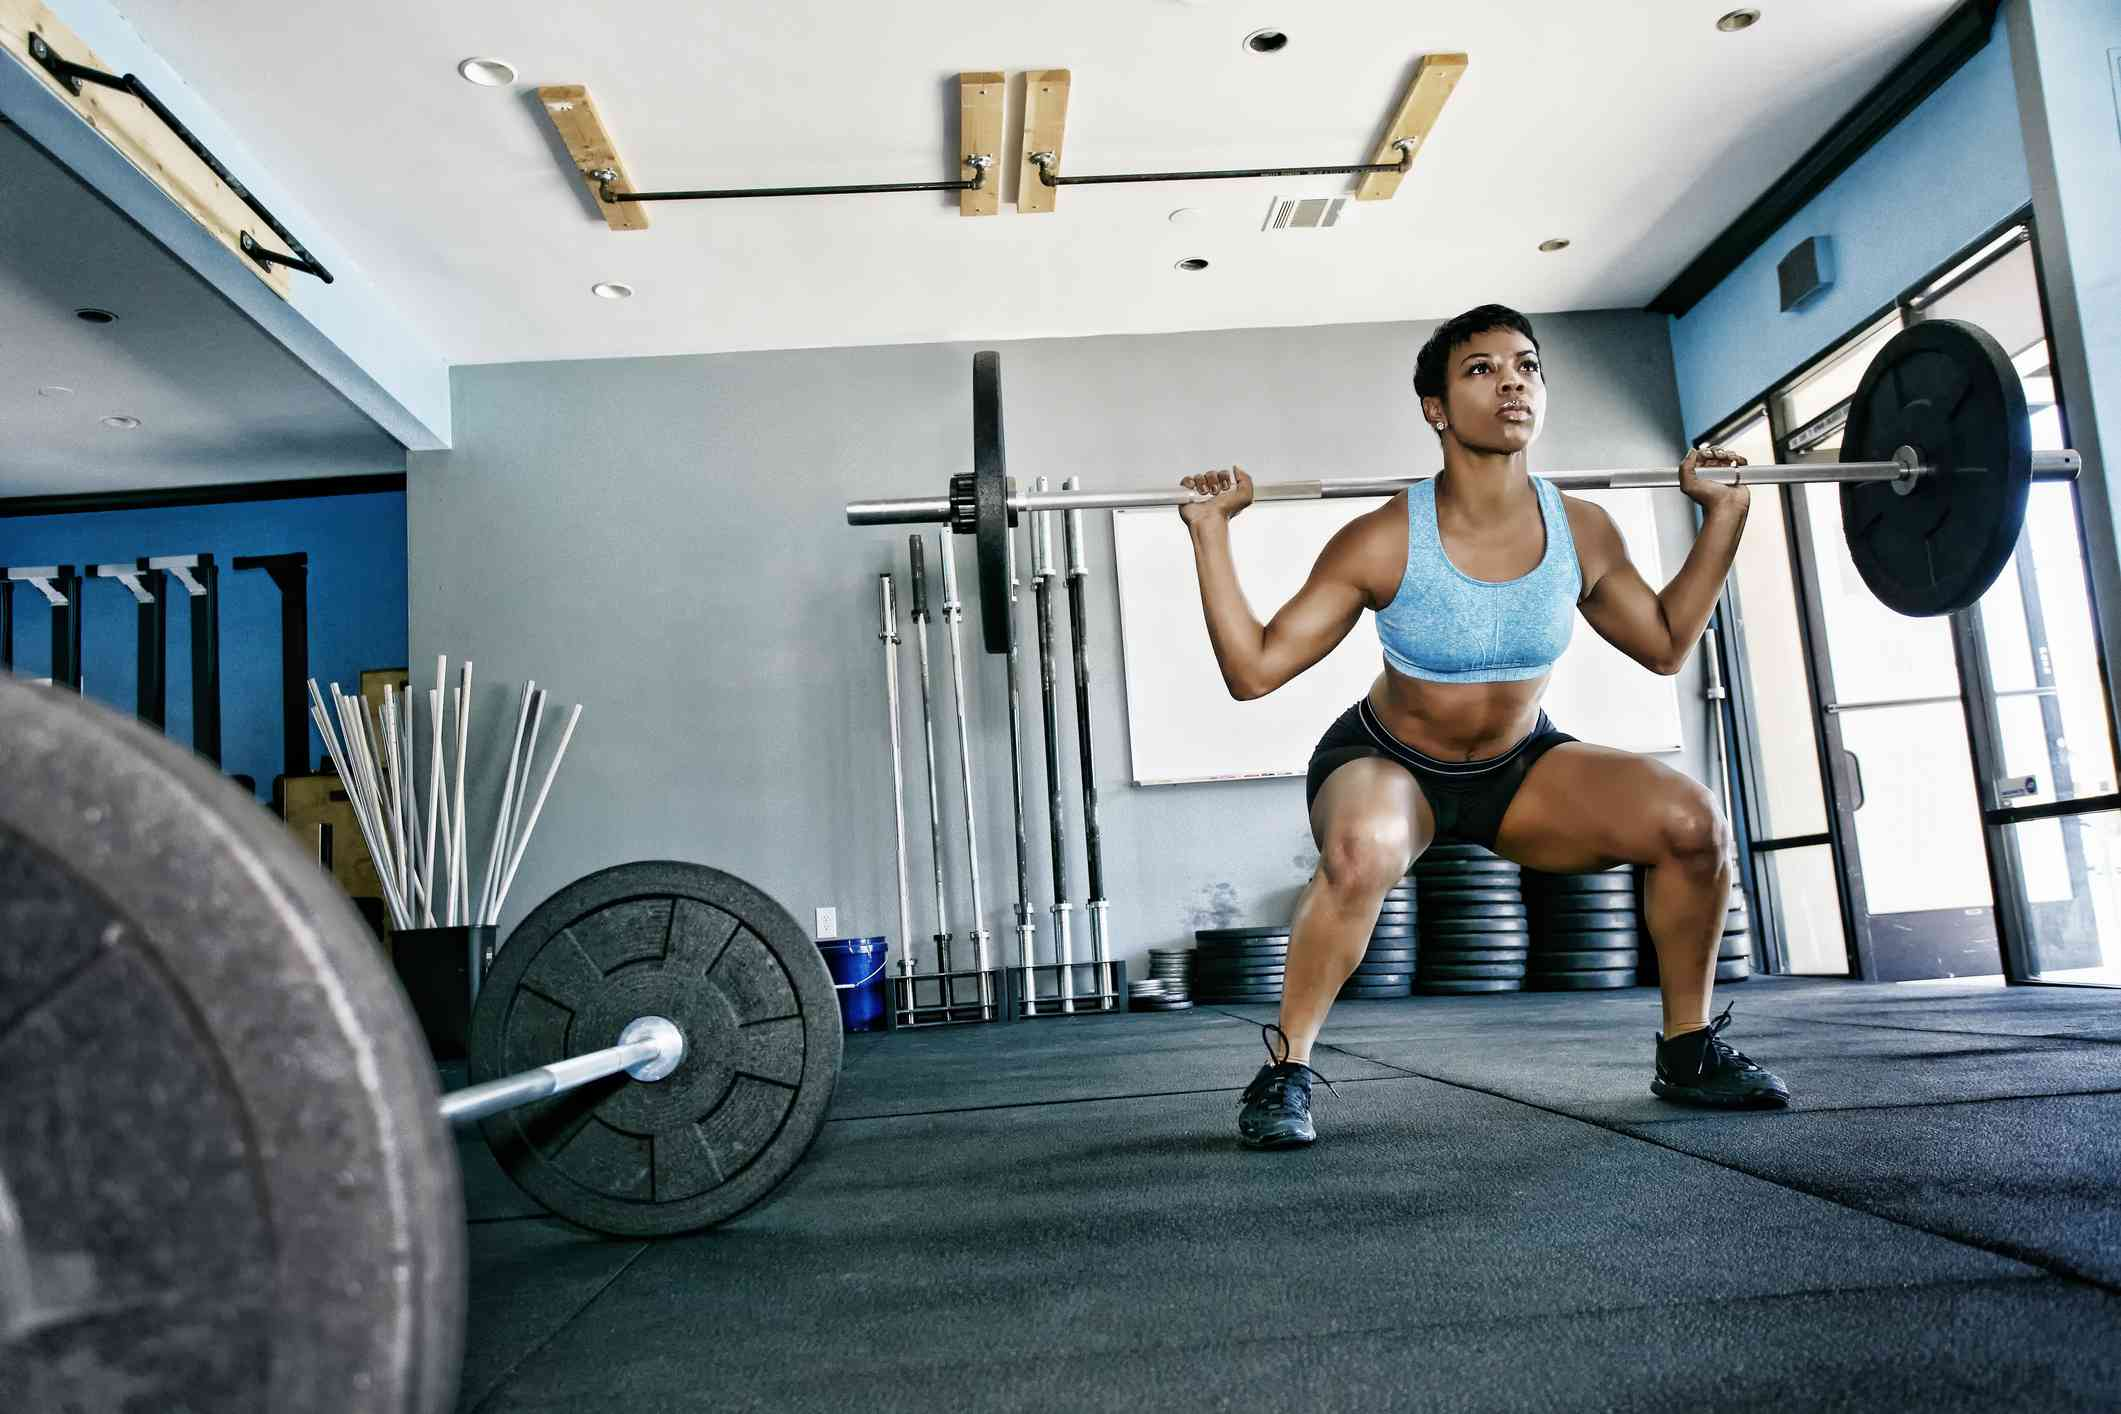 Black woman working out in gym